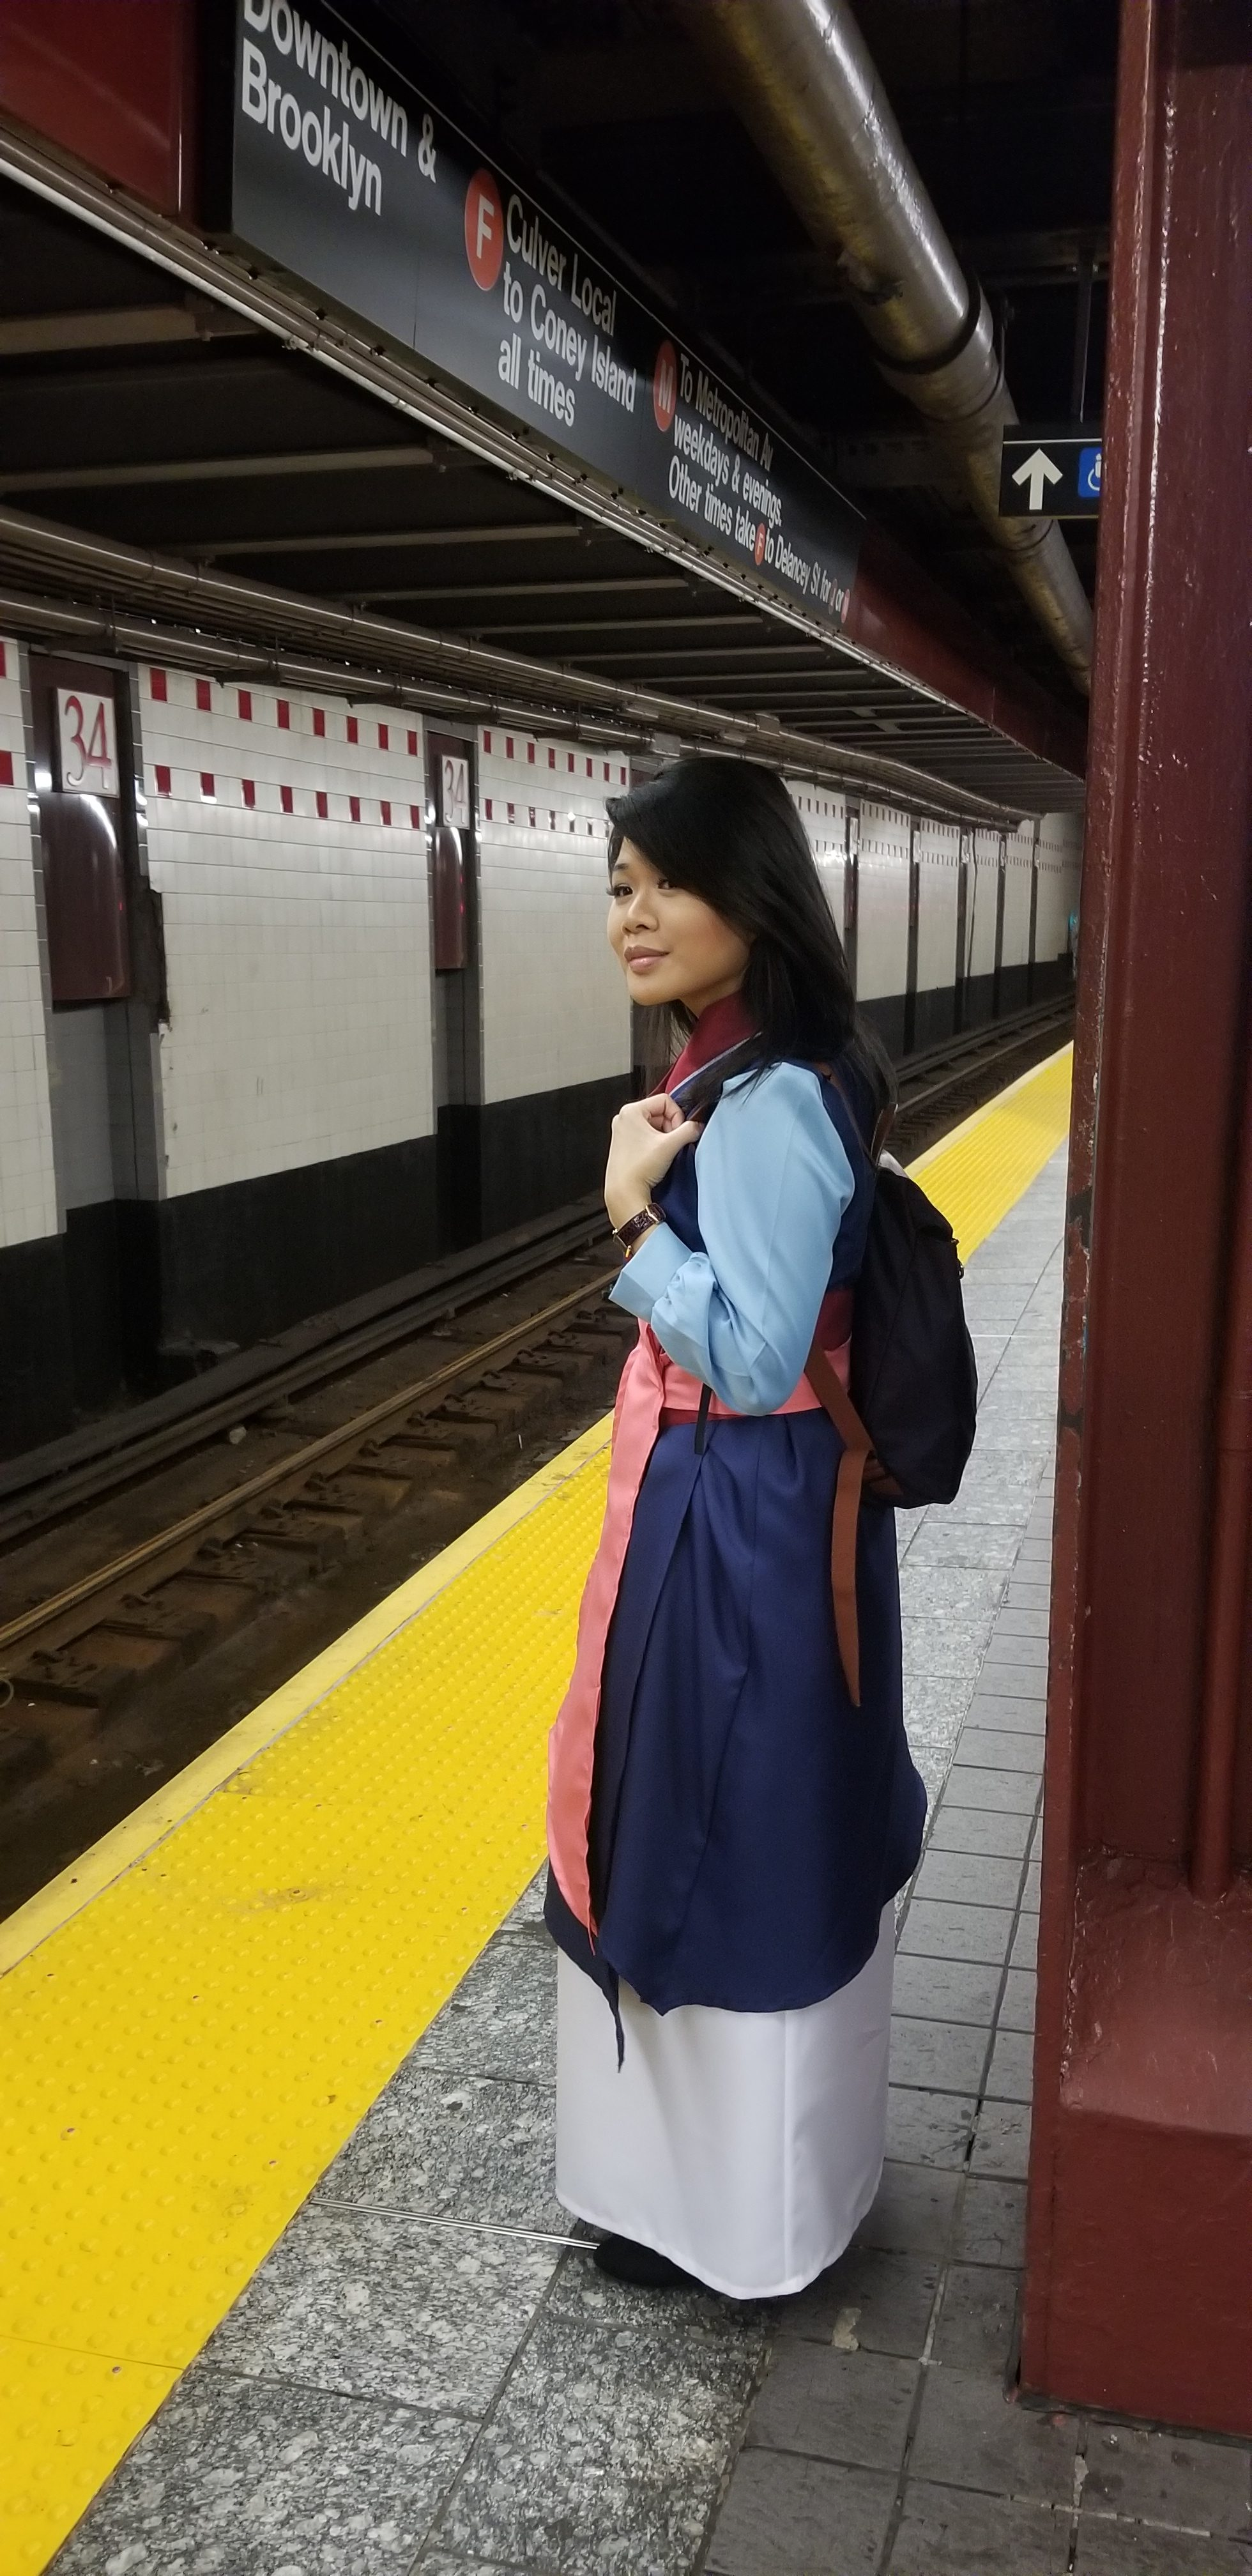 Mulan in the subway station